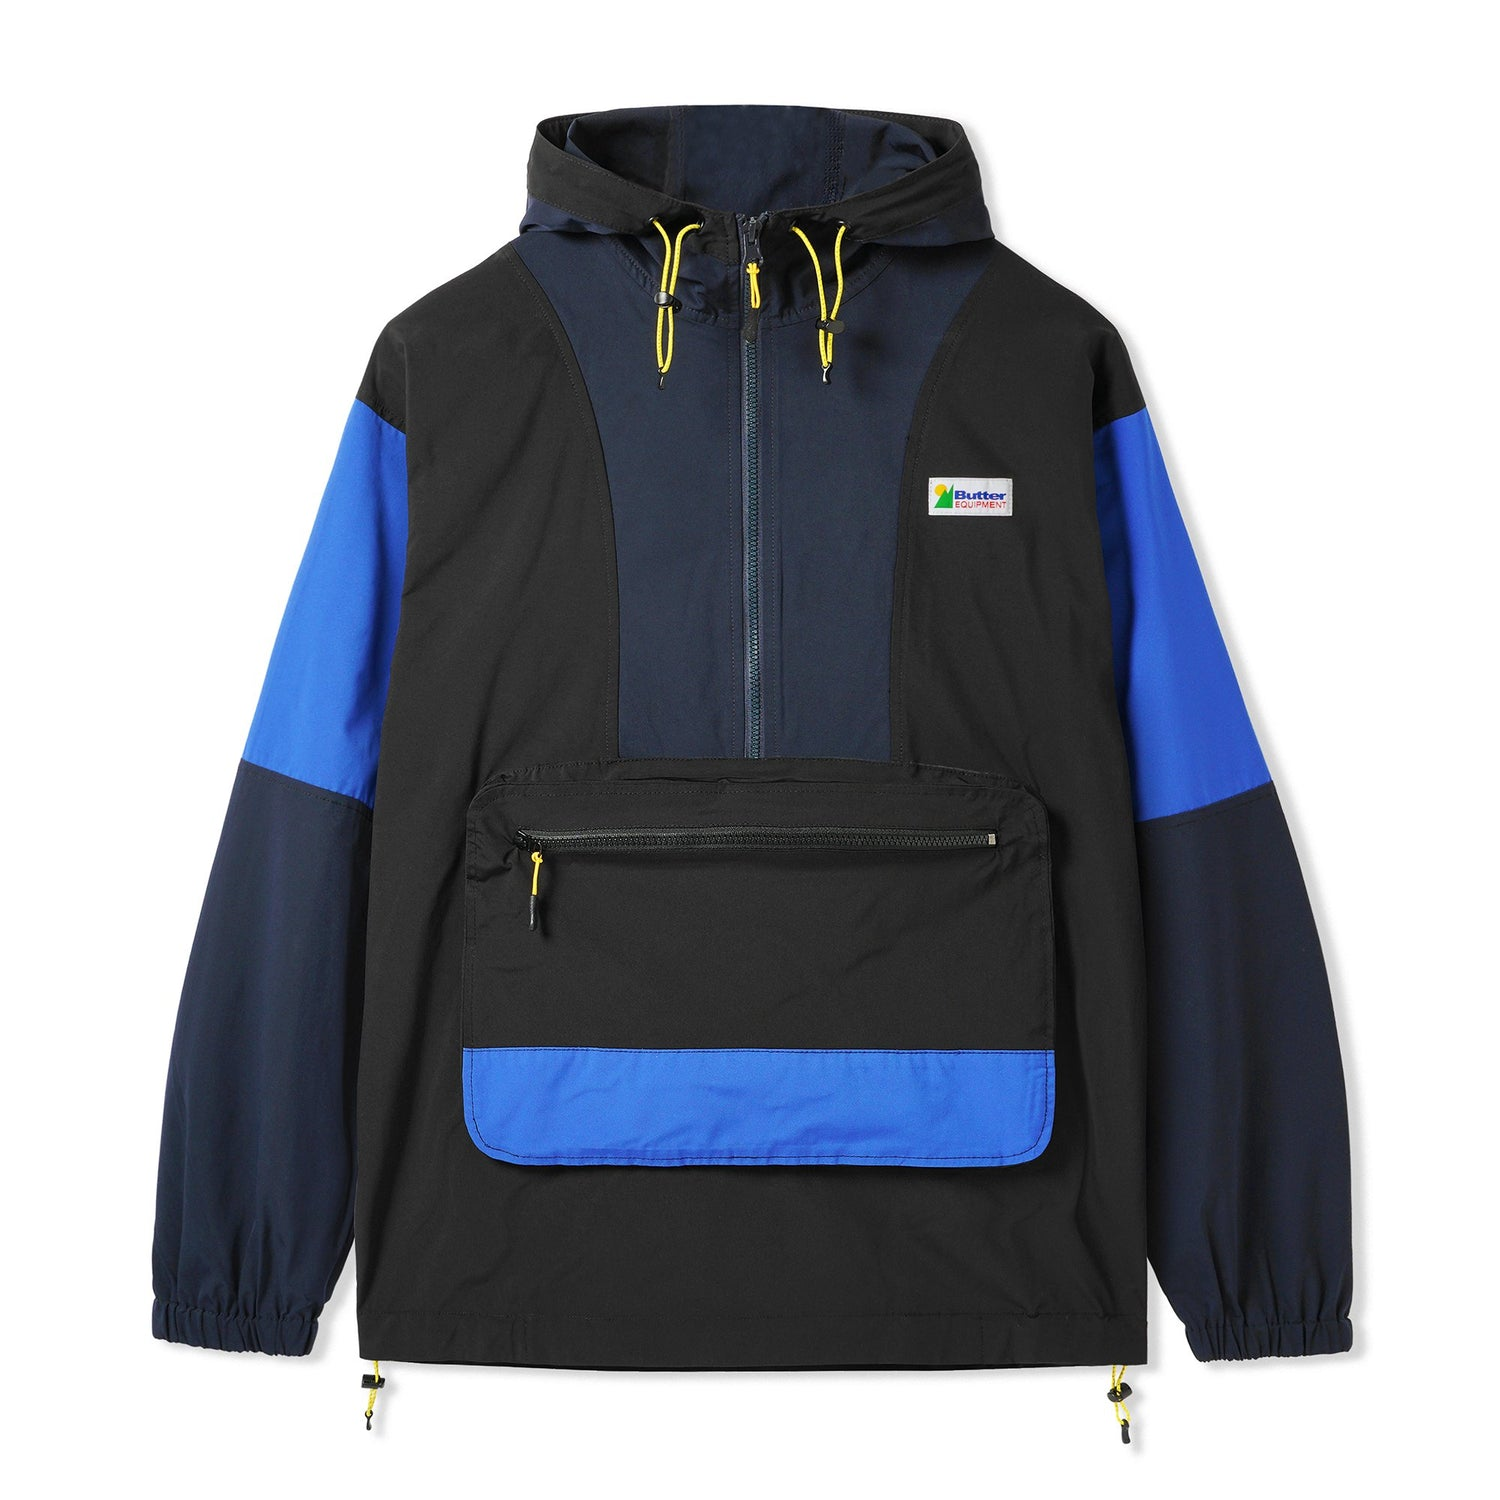 Equipment Pullover Jacket, Black / Navy / Royal